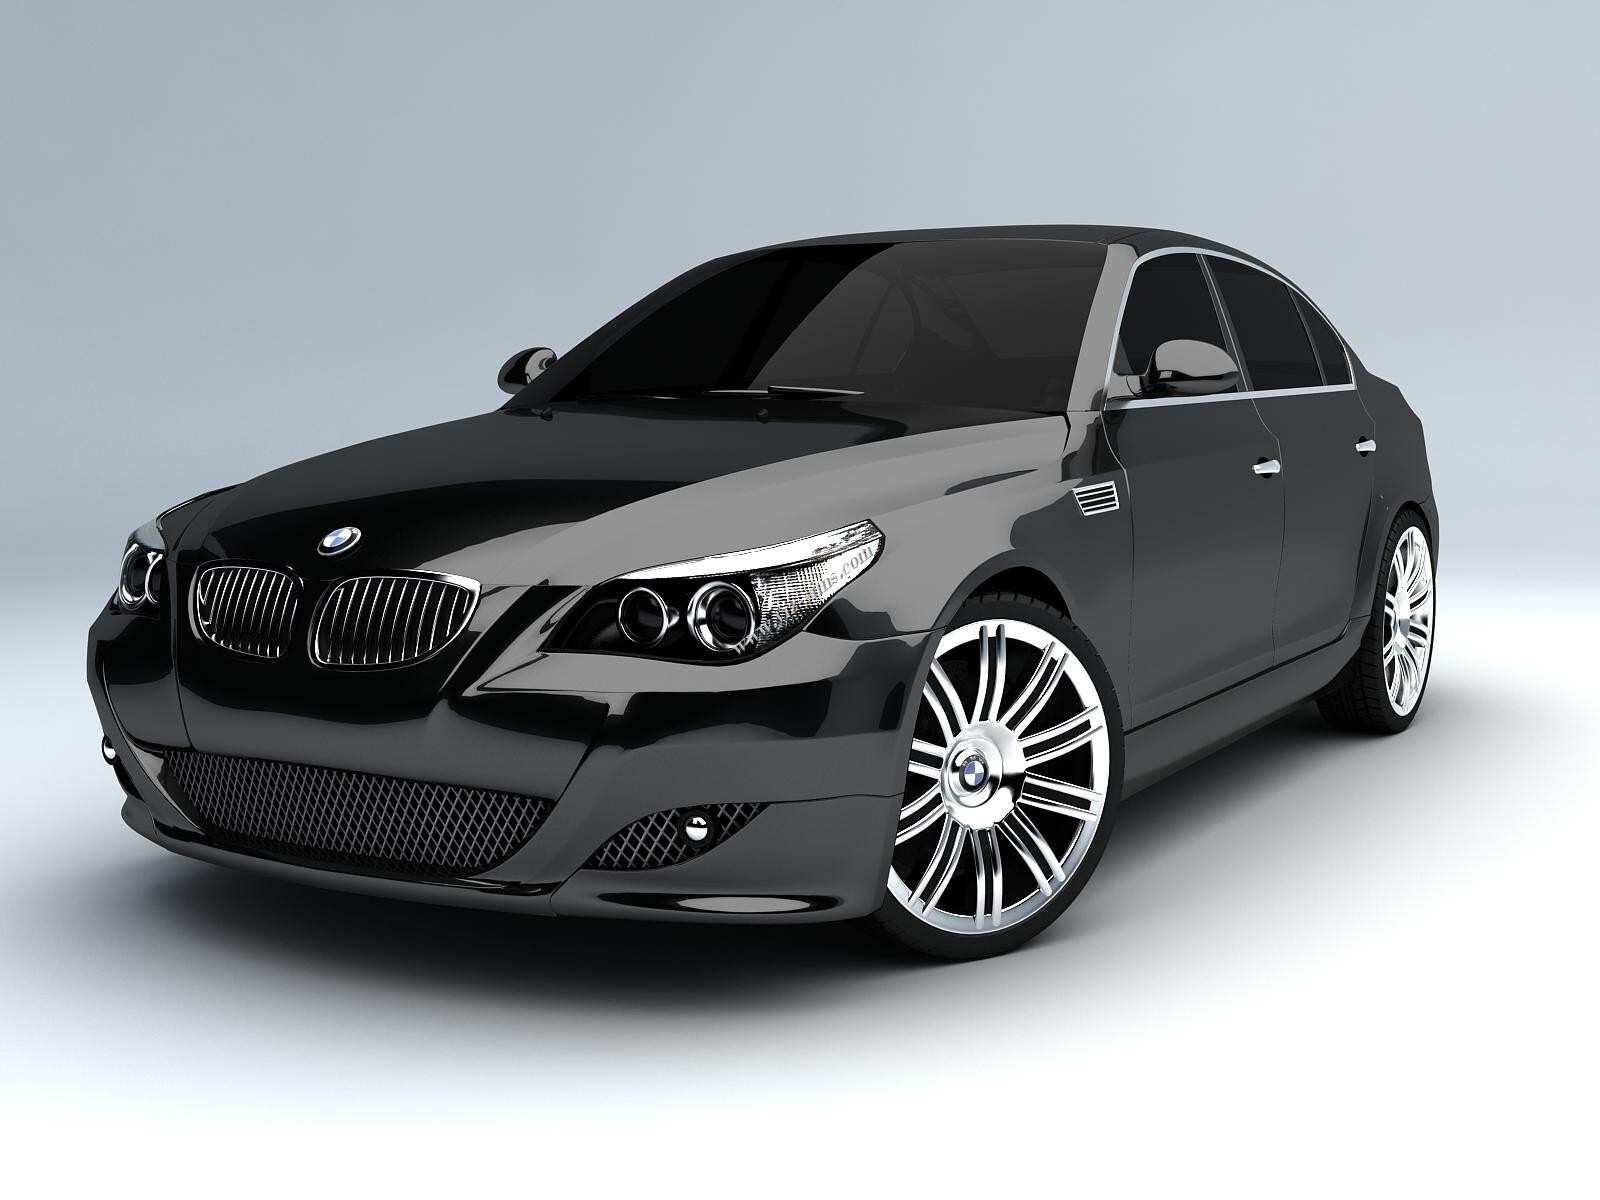 Black BMW 7 Series Cars Wallpapers | HD Wallpapers